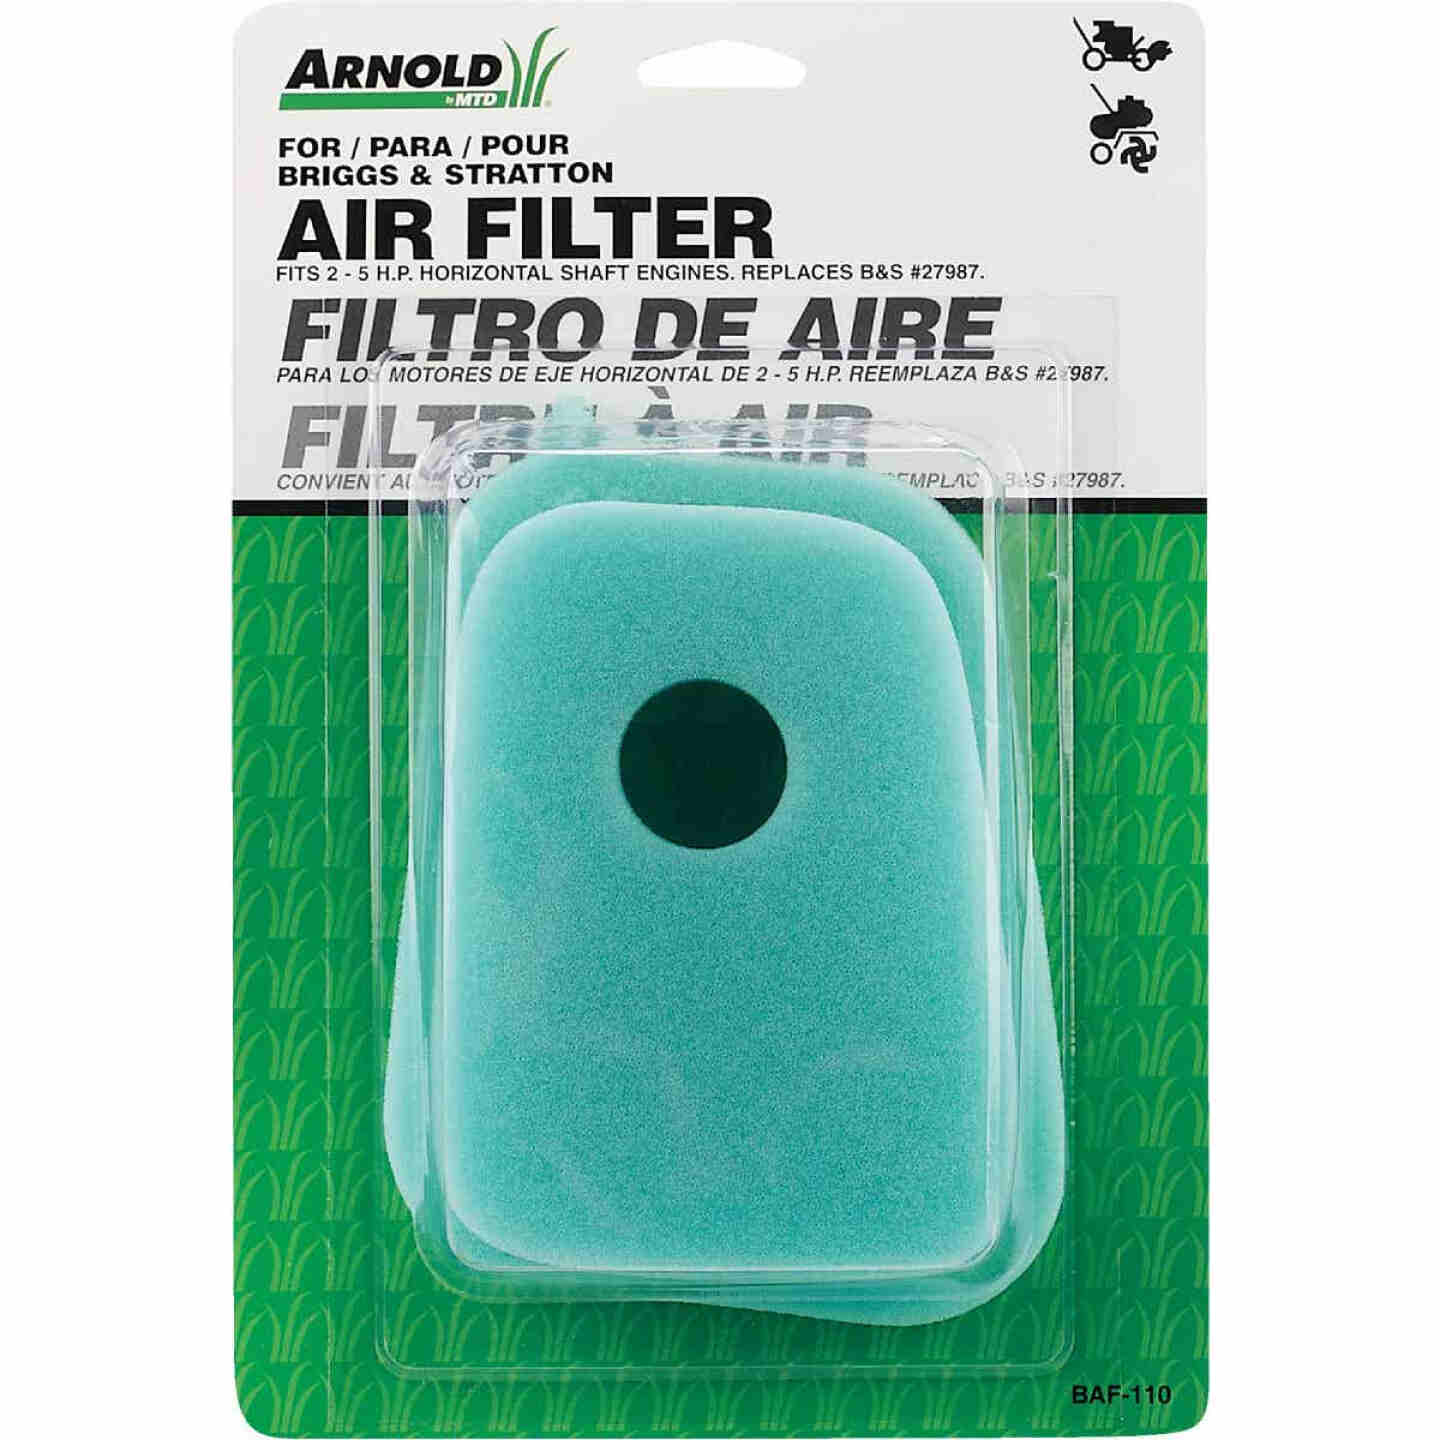 Arnold Briggs & Stratton 2 To 5 HP Foam Engine Air Filter Image 2